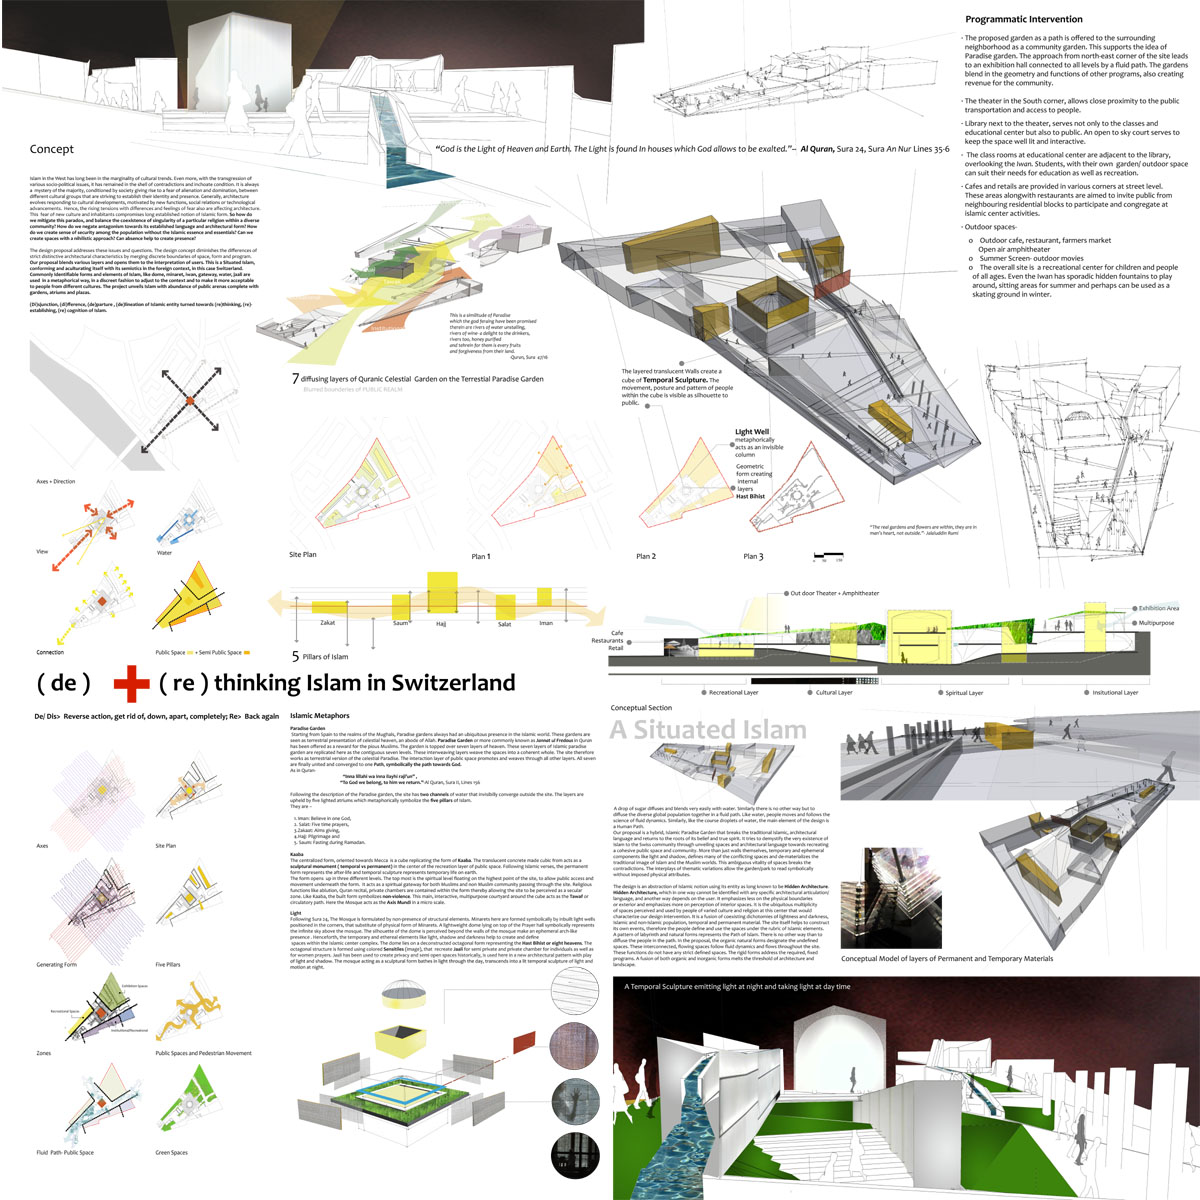 Building in conflict: (De) +(Re) Thinking Islam in Switzerland | Honor Award | 2011 Unbuilt, the Washington chapter, The American Institute of Architects